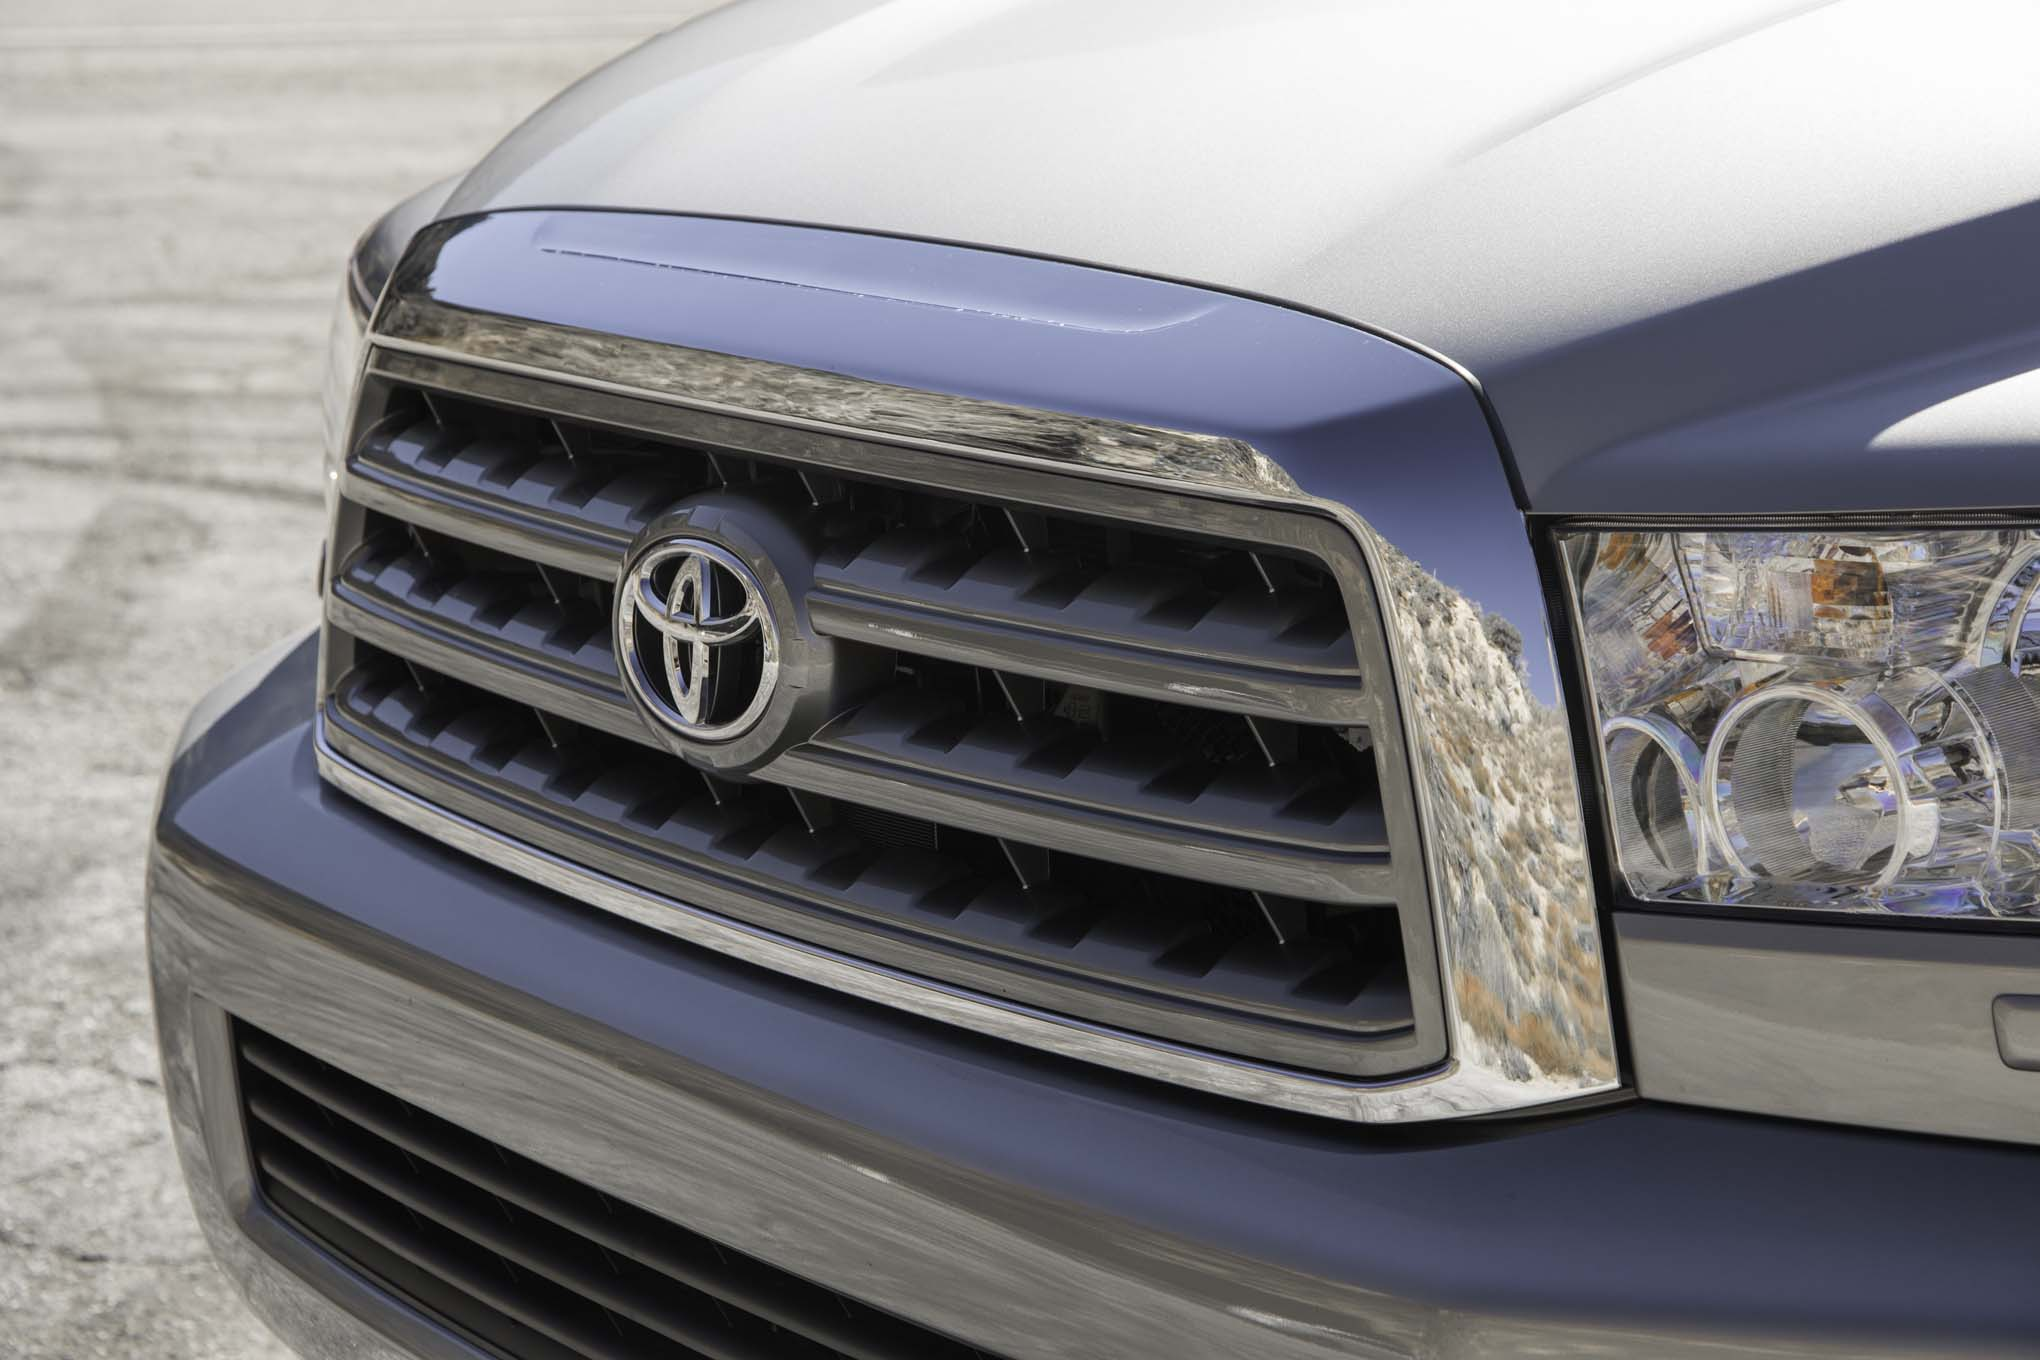 2017 Toyota Sequoia 4×4 Platinum Exterior View Grille (Photo 6 of 26)